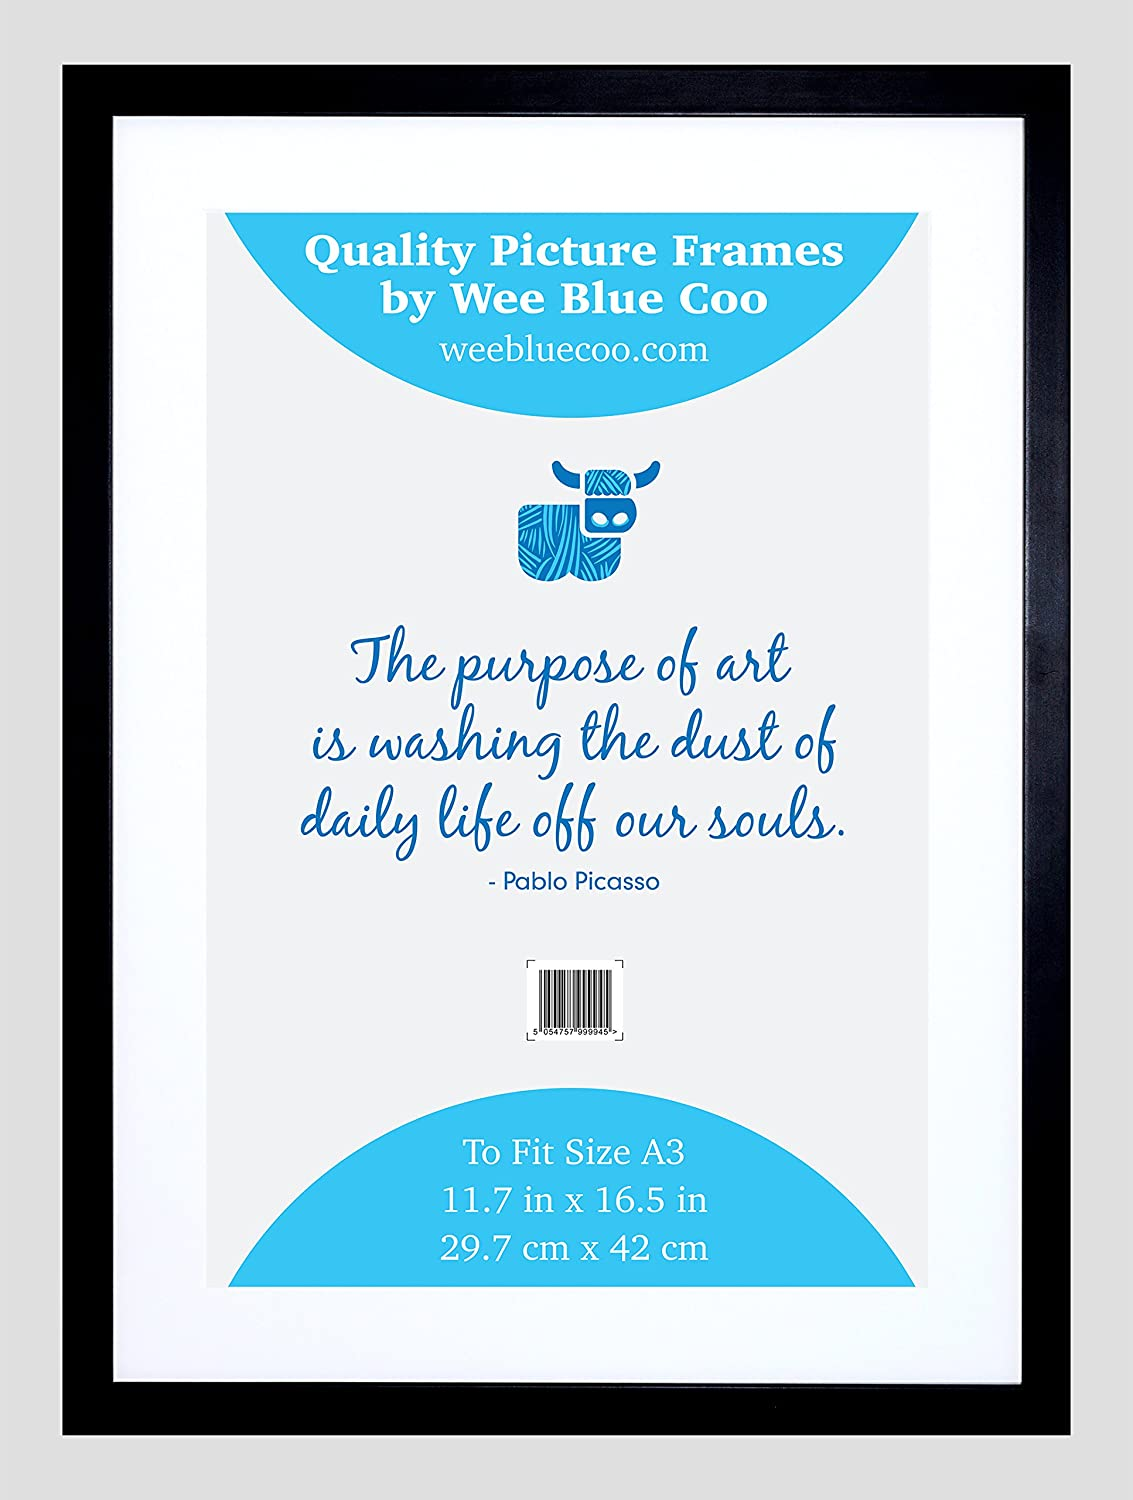 Wee Blue Coo A3 Black Wooden Picture Frame 11.7 x 16 Inch Acrylic Safety 'Glass' Photo Frame FRA019